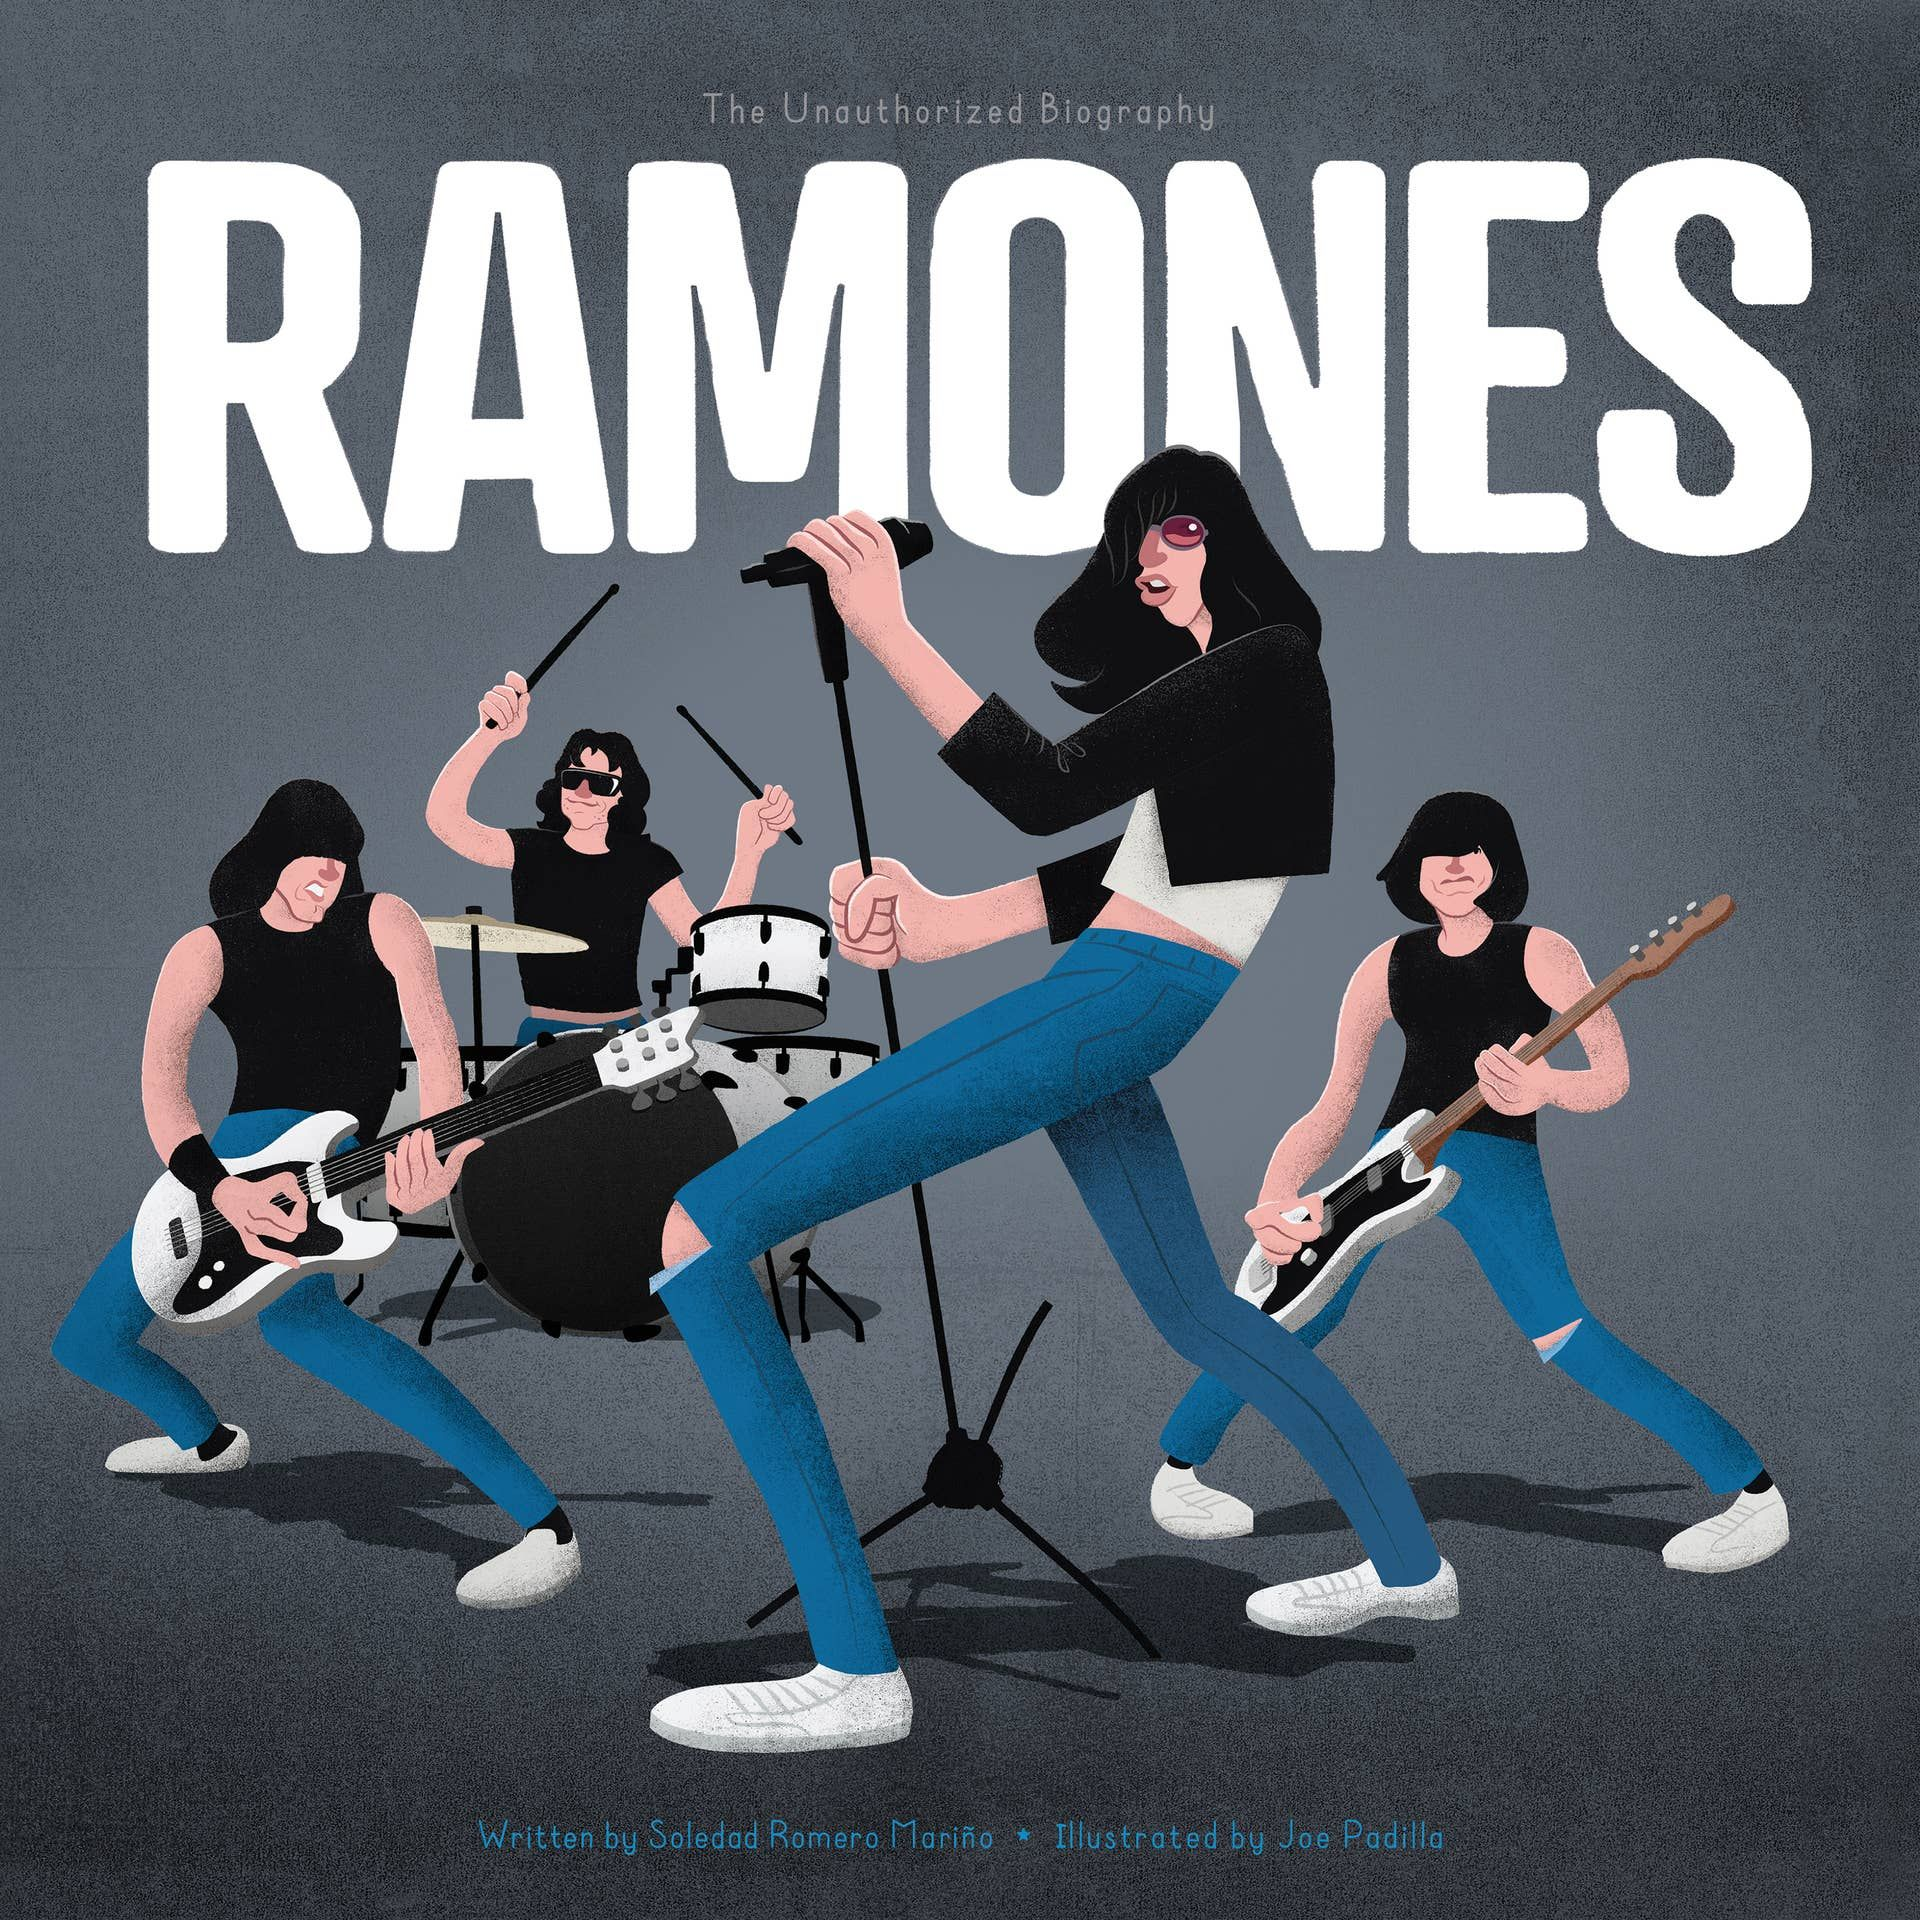 Behind-the-scenes stories and sophisticated artwork will give lifelong buffs and new fans alike a rare glimpse into the world of one of the most iconic bands ever, the Ramones! 40 pages.The Ramones are punk rock. It started in Queens, New York in the early seventies. Four shy boys who couldn't even play instruments got a couple guitars, found some ripped jeans and black leather jackets, and took over the world of punk.Lifelong rockers and new fans alike will love learning more about Joey, Johnny